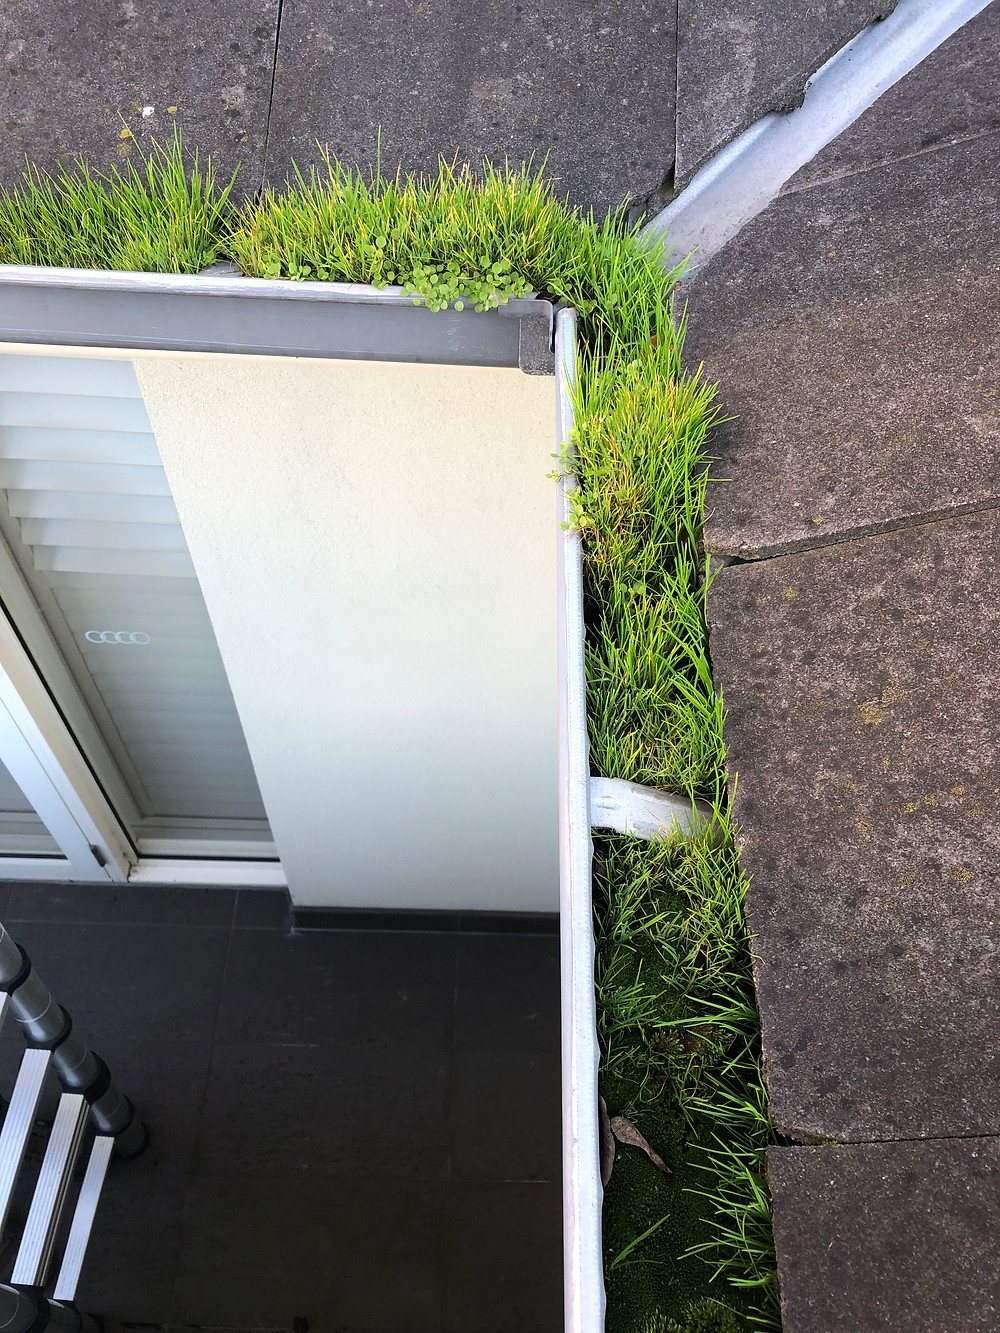 Leighs window Cleaning - Gutter cleaning